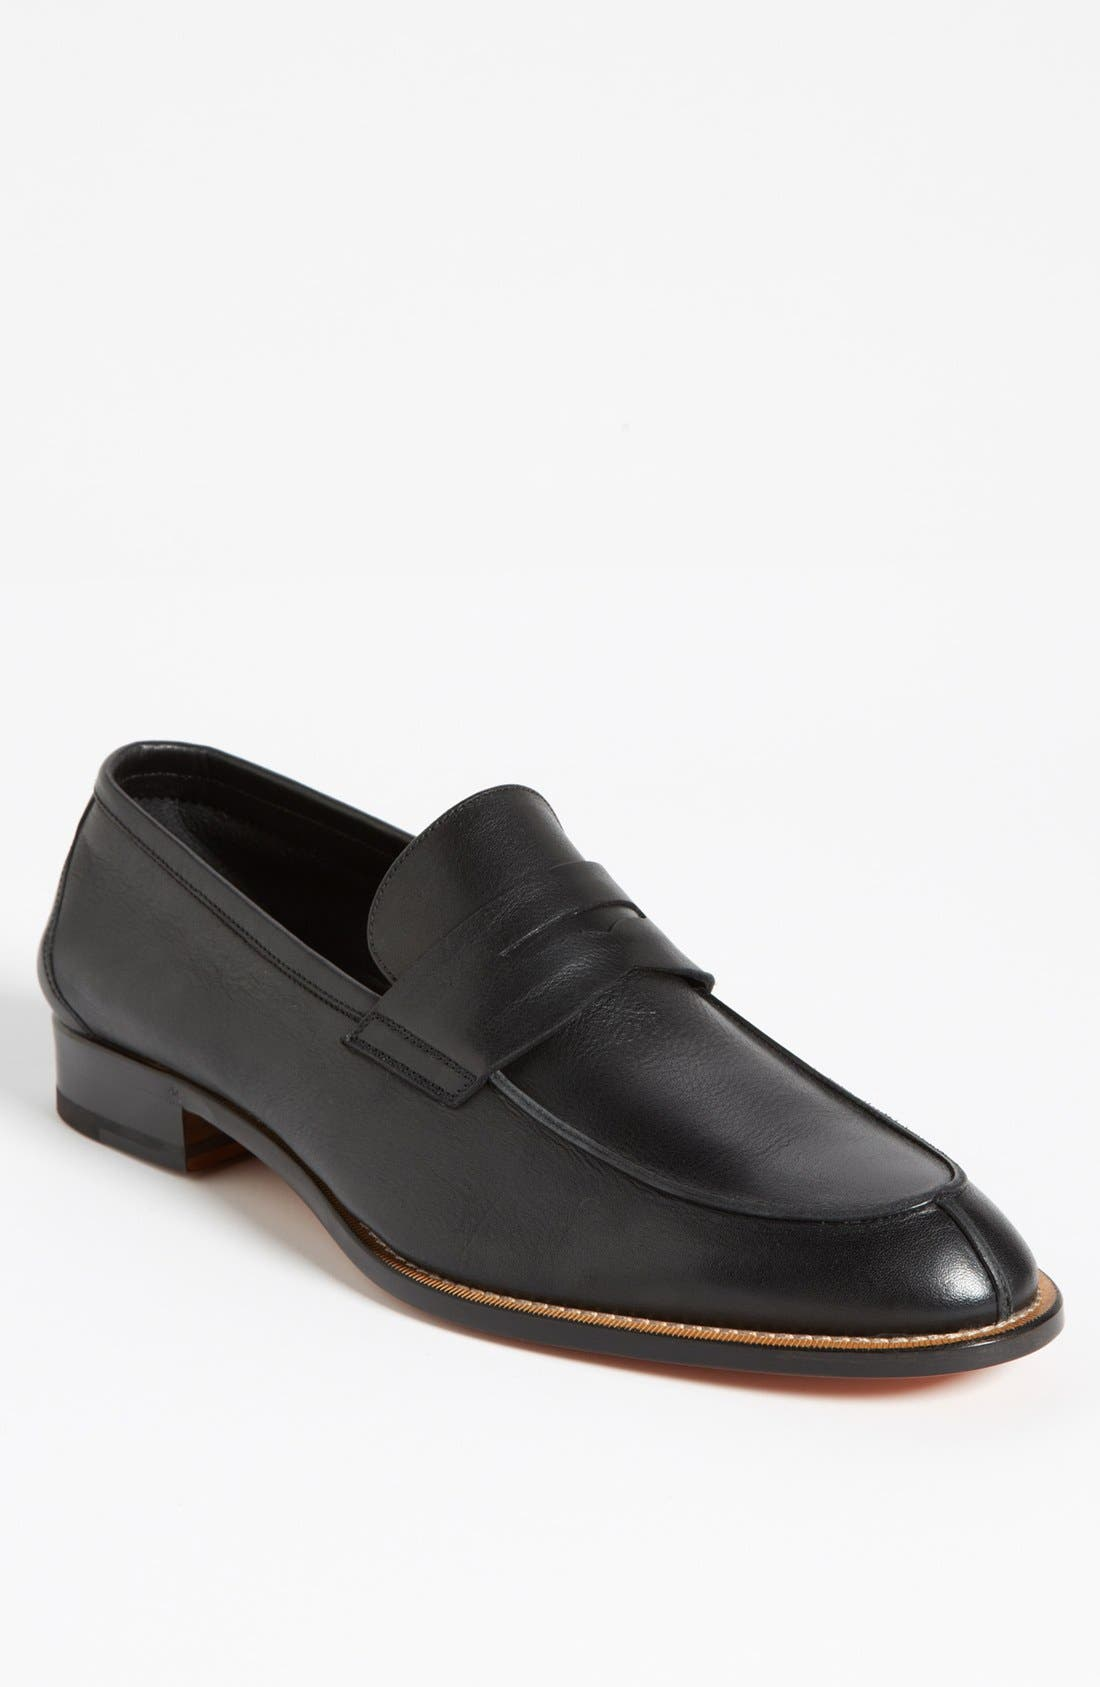 Main Image - Bruno Magli 'Rotzo' Penny Loafer